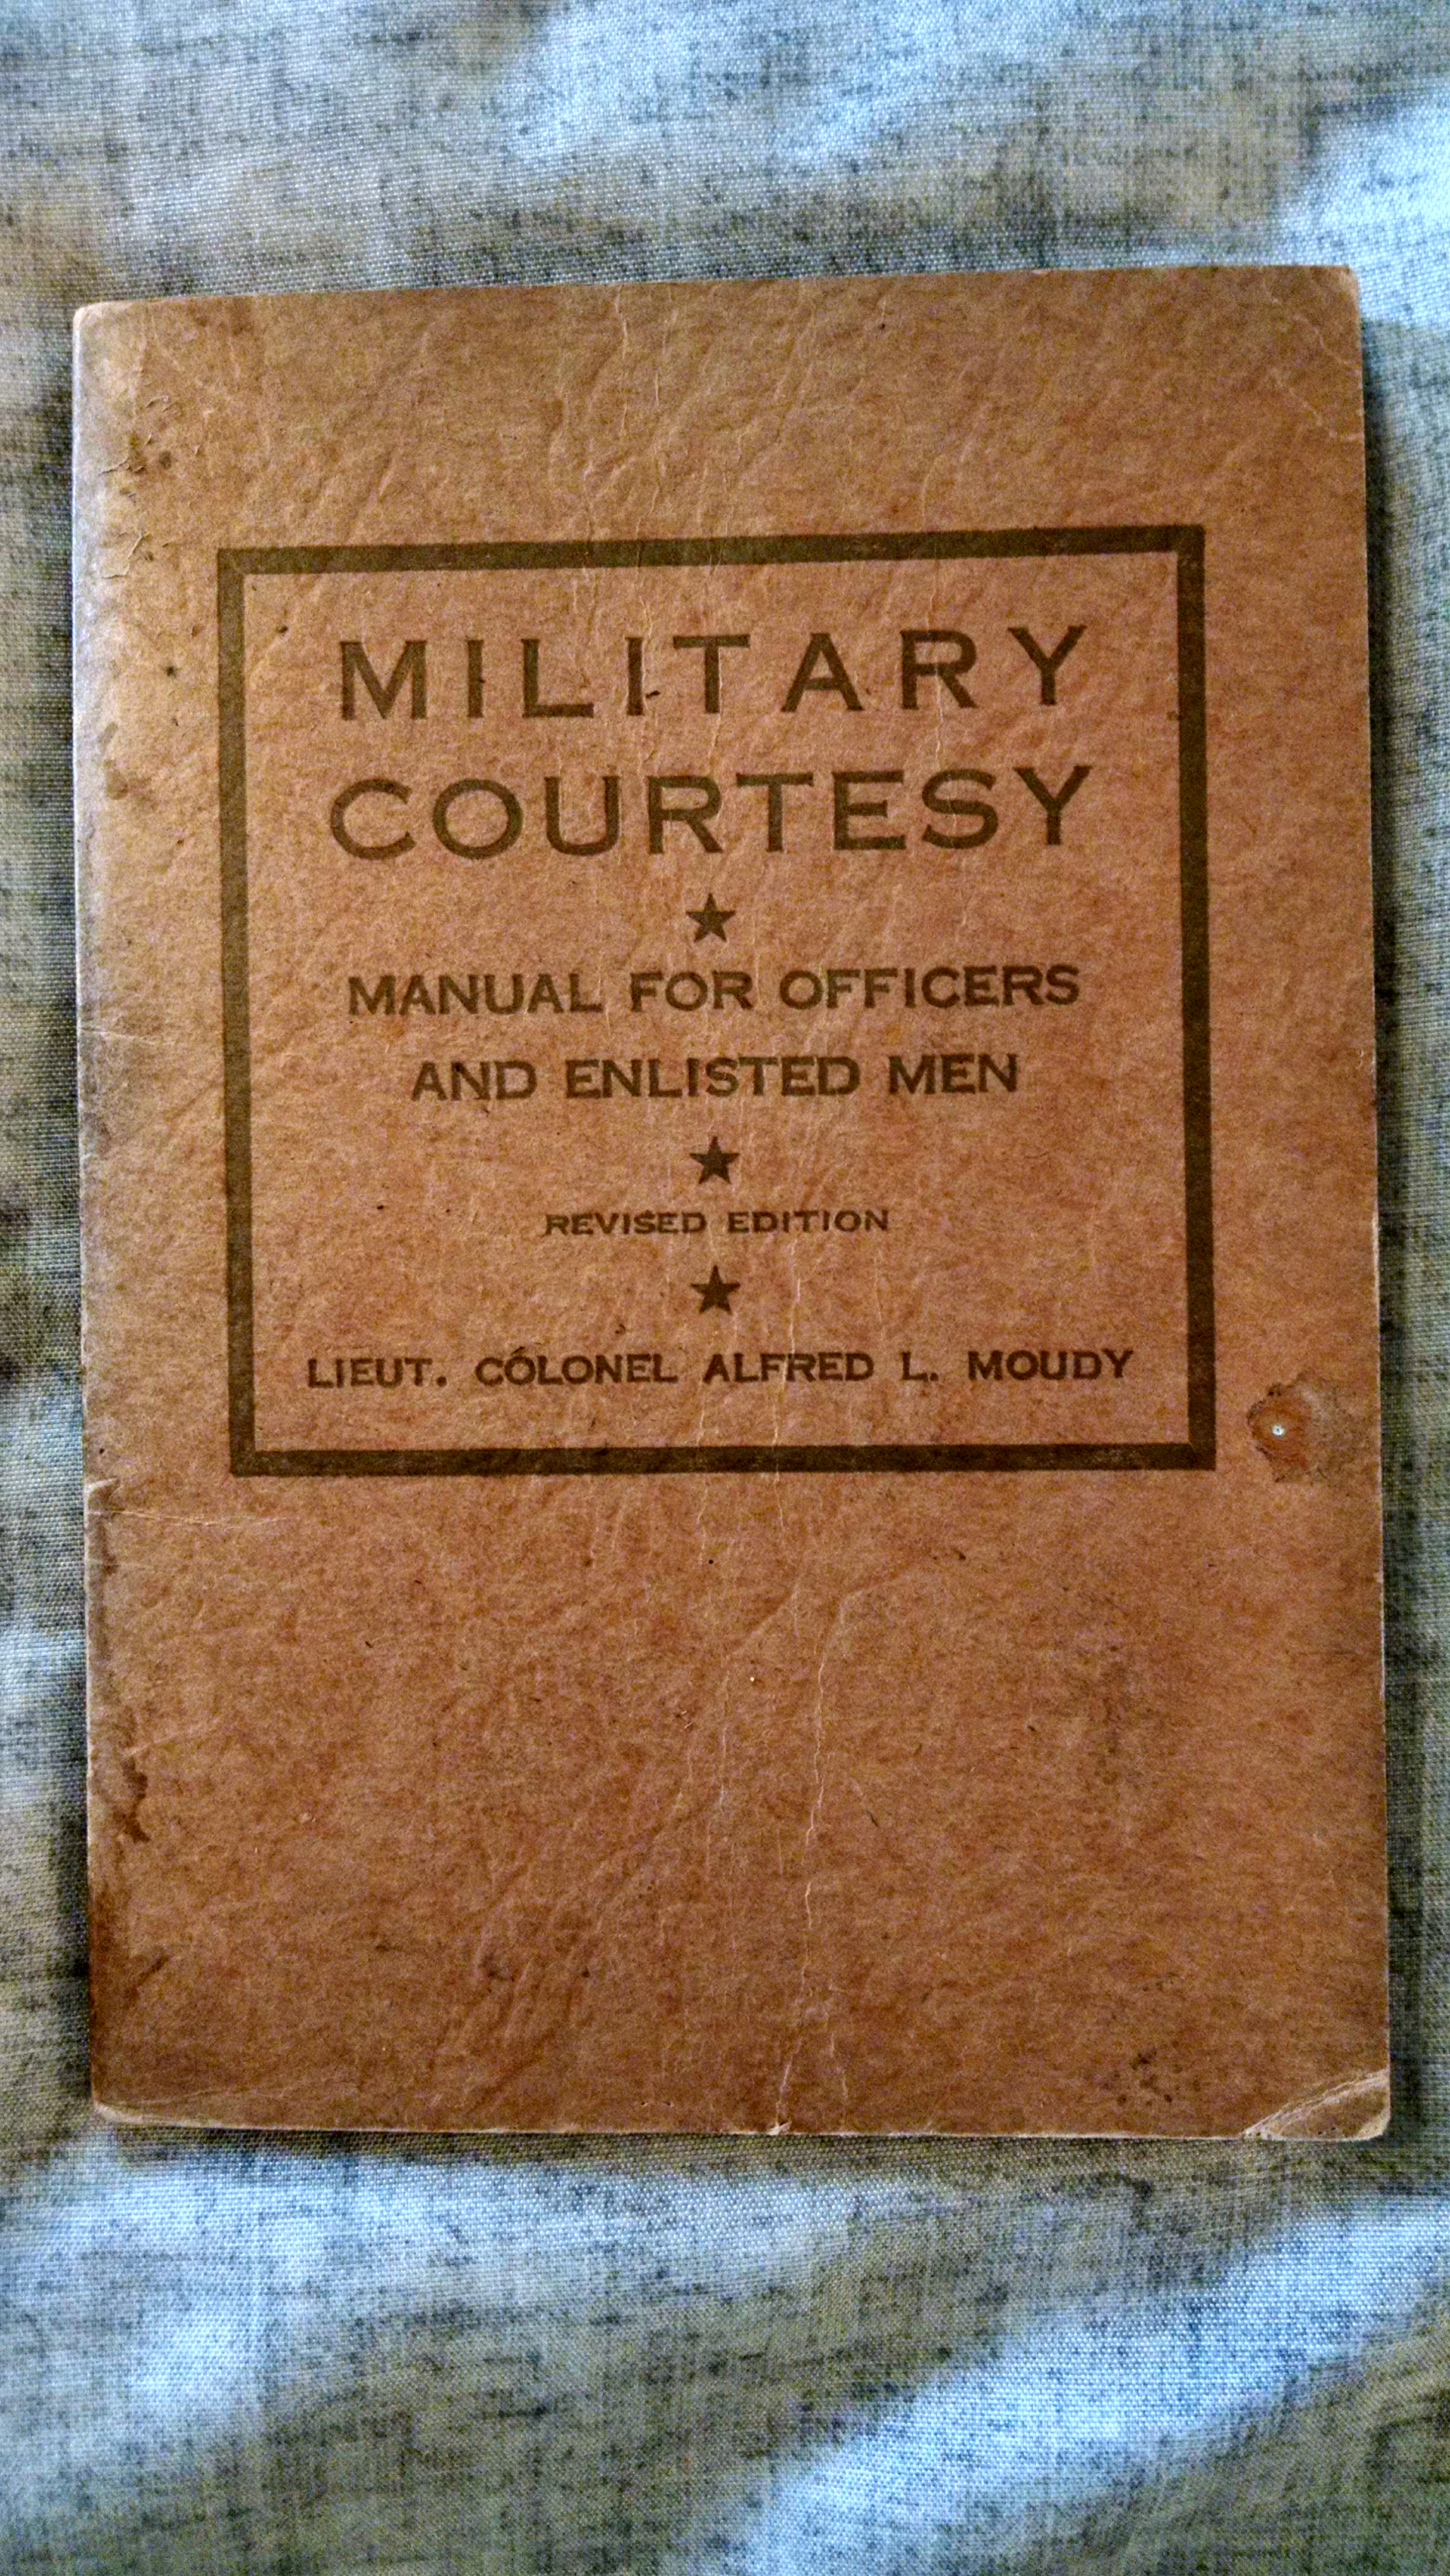 Image for MILITARY COURTSEY  MANUAL FOR OFFICERS AND ENLISTED MEN